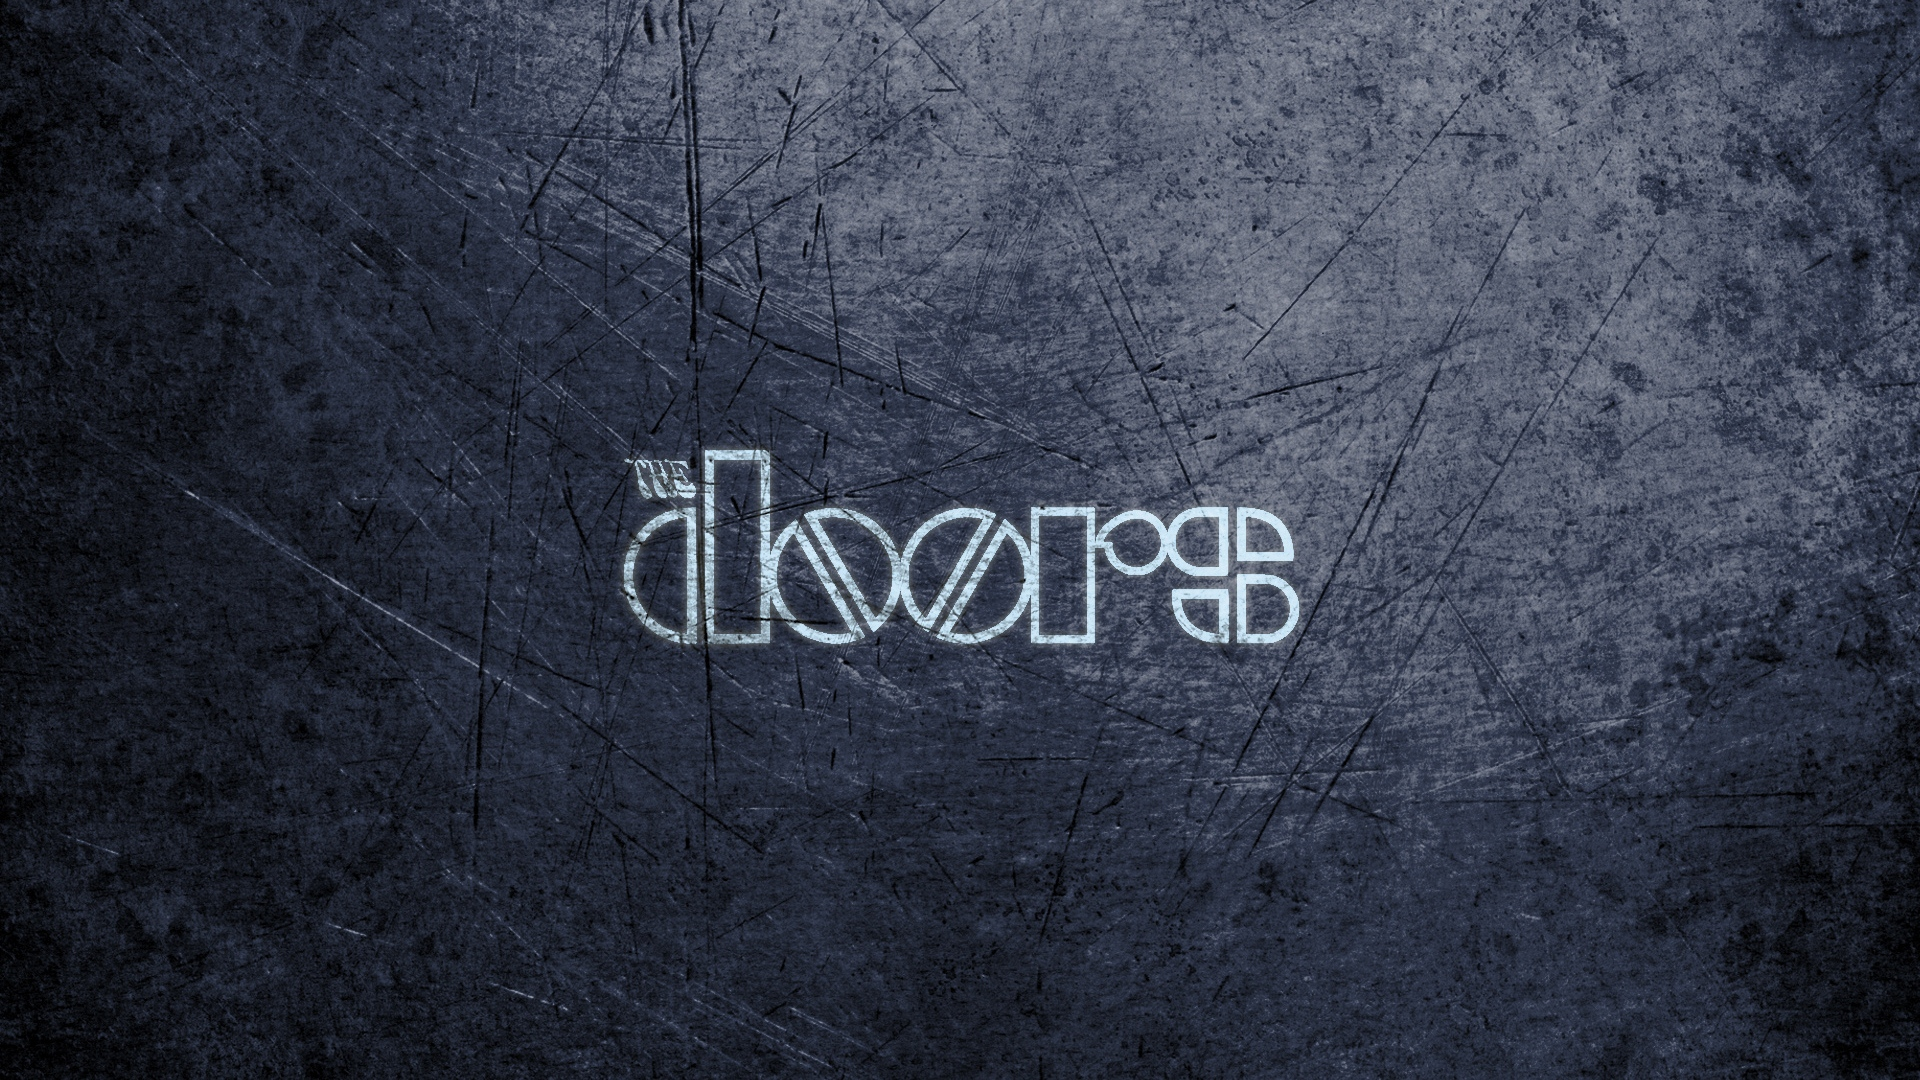 Get the latest the doors name font news pictures and videos and learn all about the doors name font from wallpapers4u.org your wallpaper news source. & Download Wallpaper 1920x1080 the doors name font letters ...